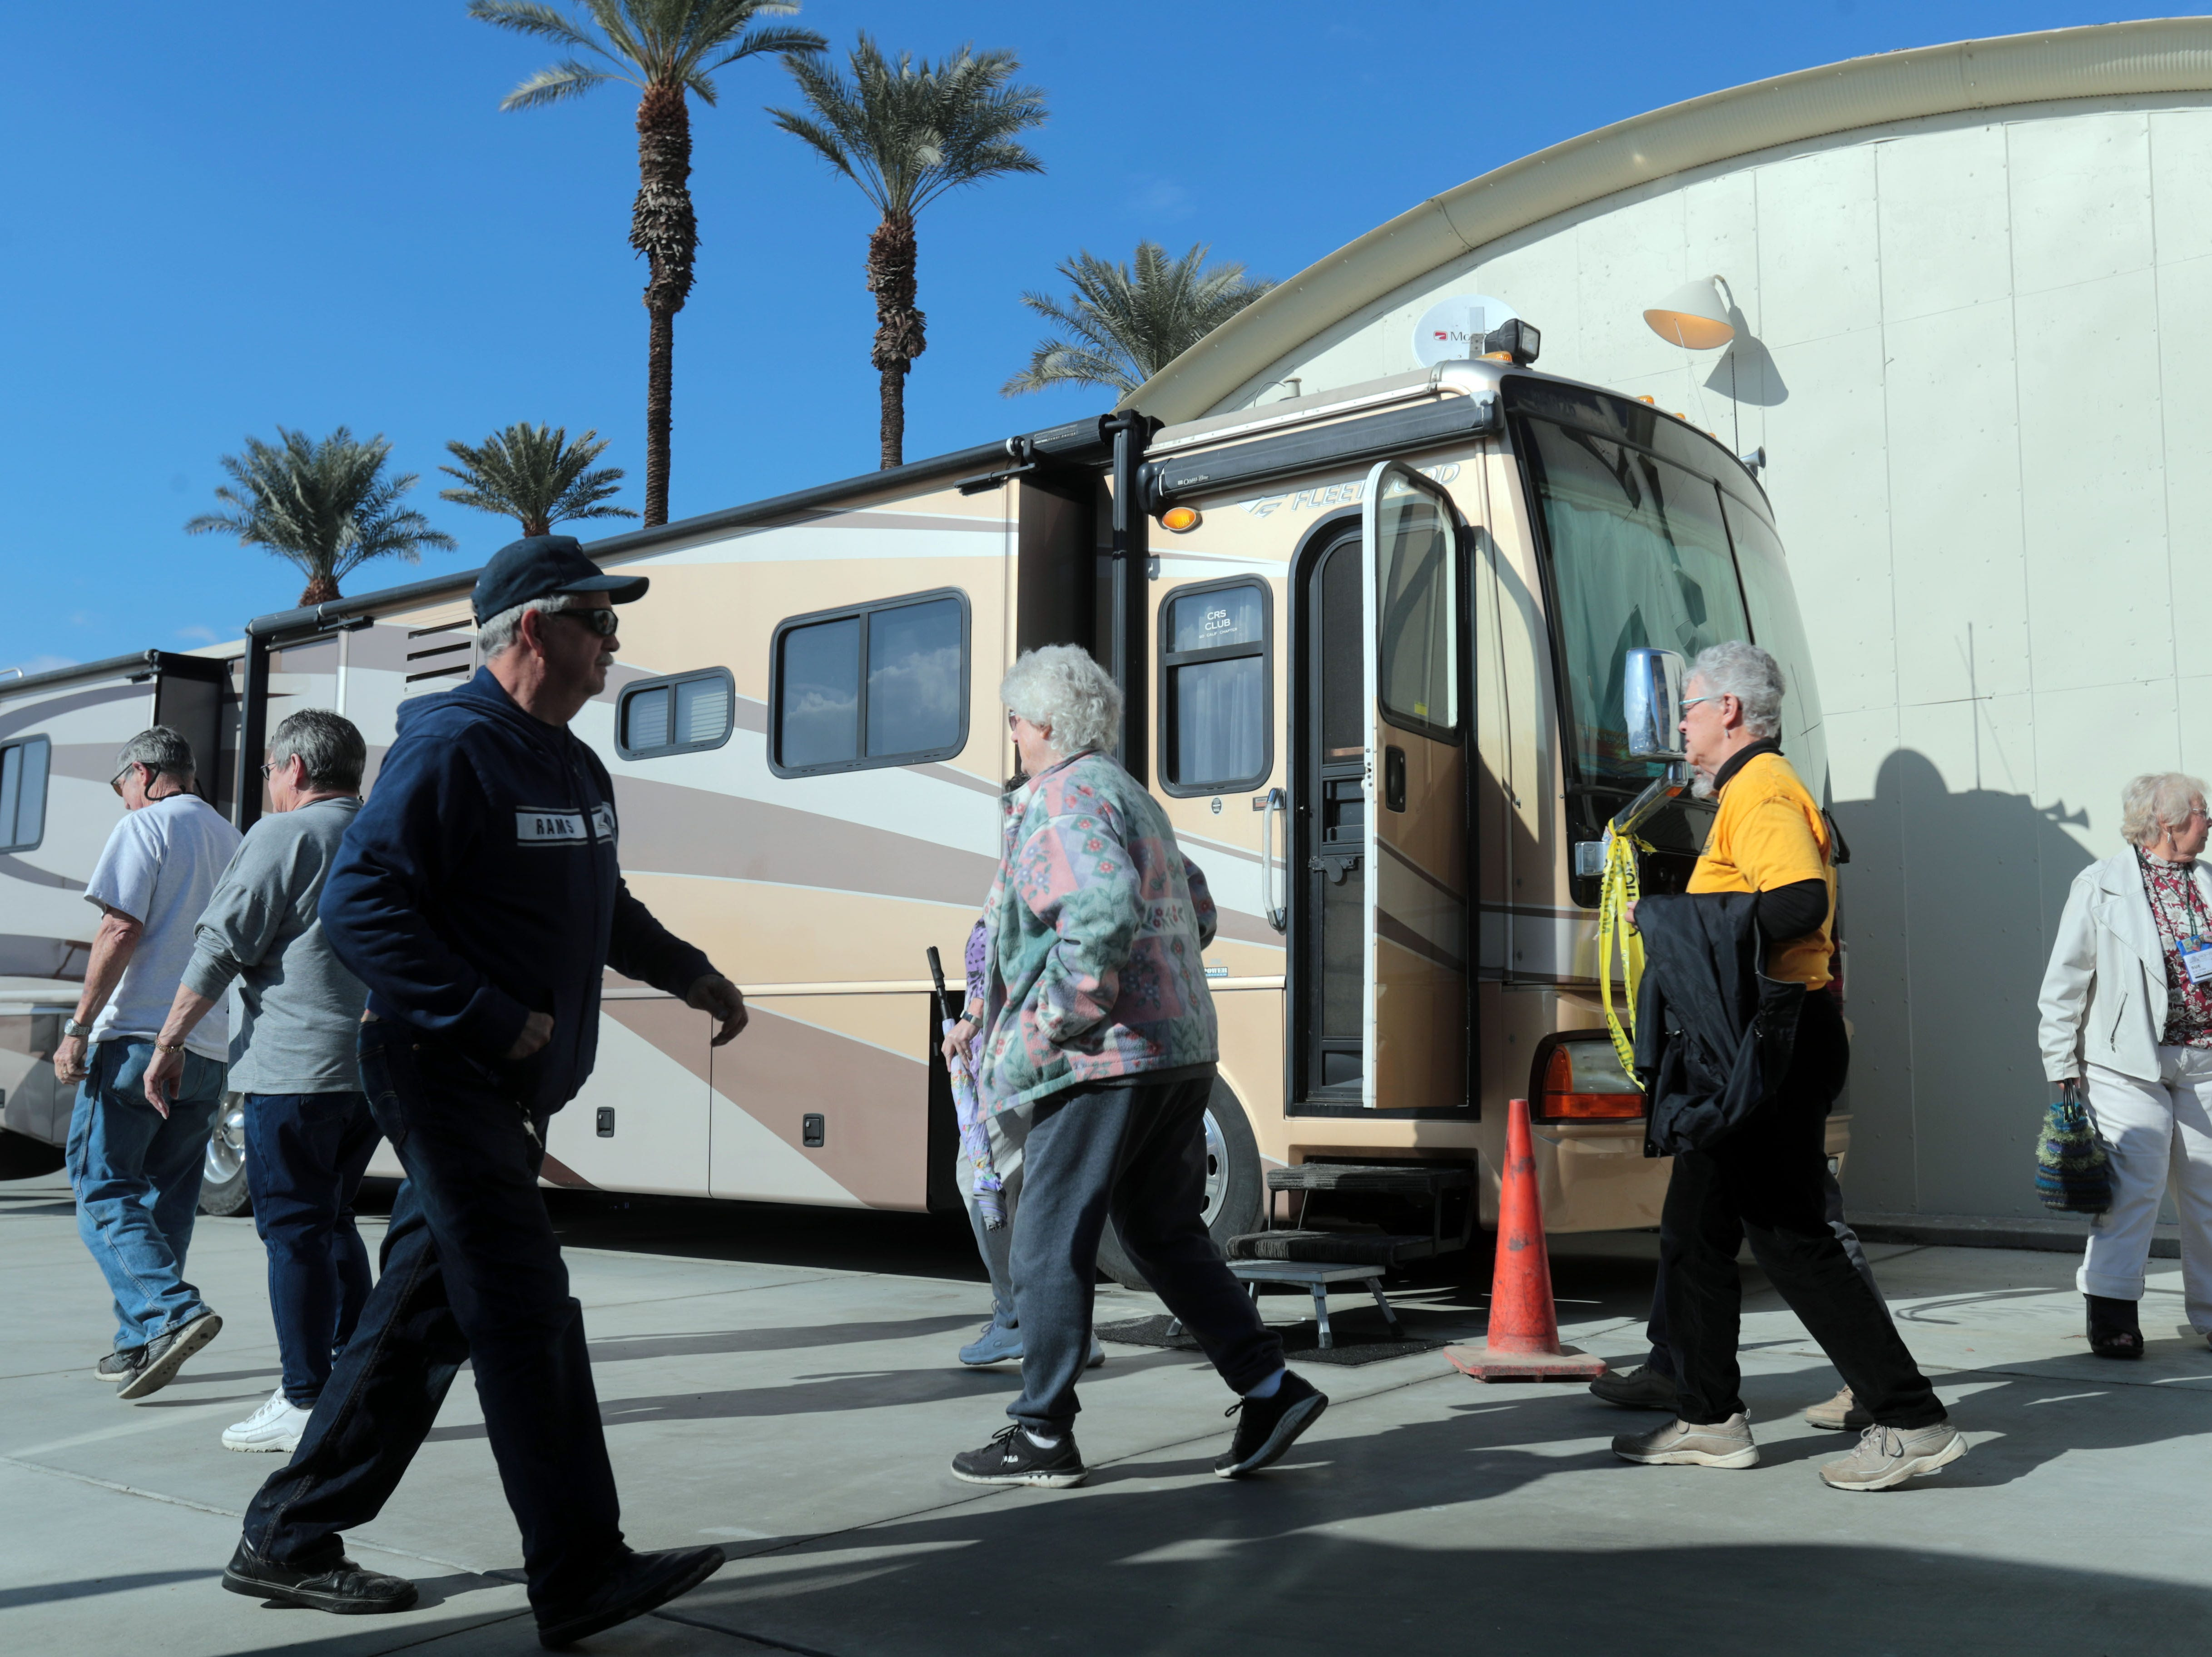 RV owners at the Riverside County Fairground in Indio on Saturday, January 12, 2019, during the FMCA annual motorhome convention.